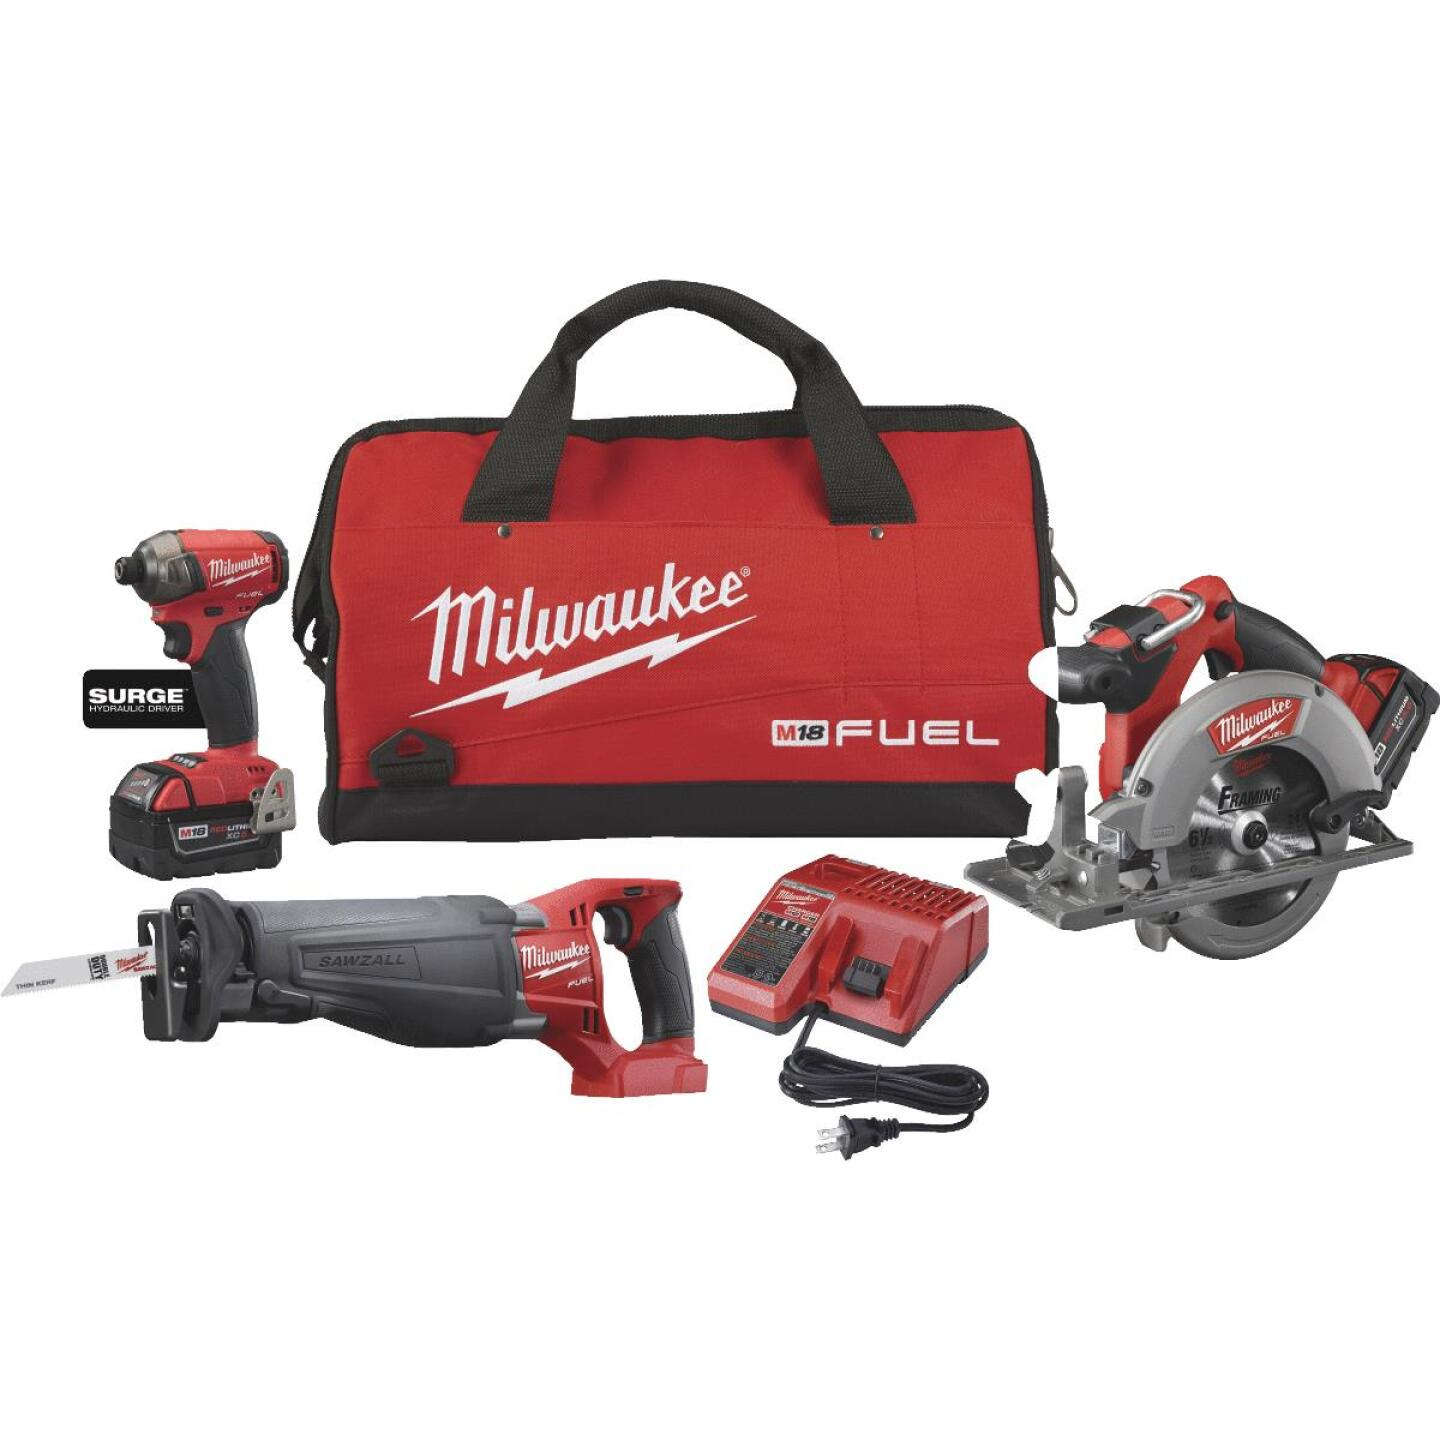 Milwaukee 3-Tool M18 FUEL Lithium-Ion Brushless Impact Driver, Sawzall & Circular Saw Cordless Tool Combo Kit Image 1